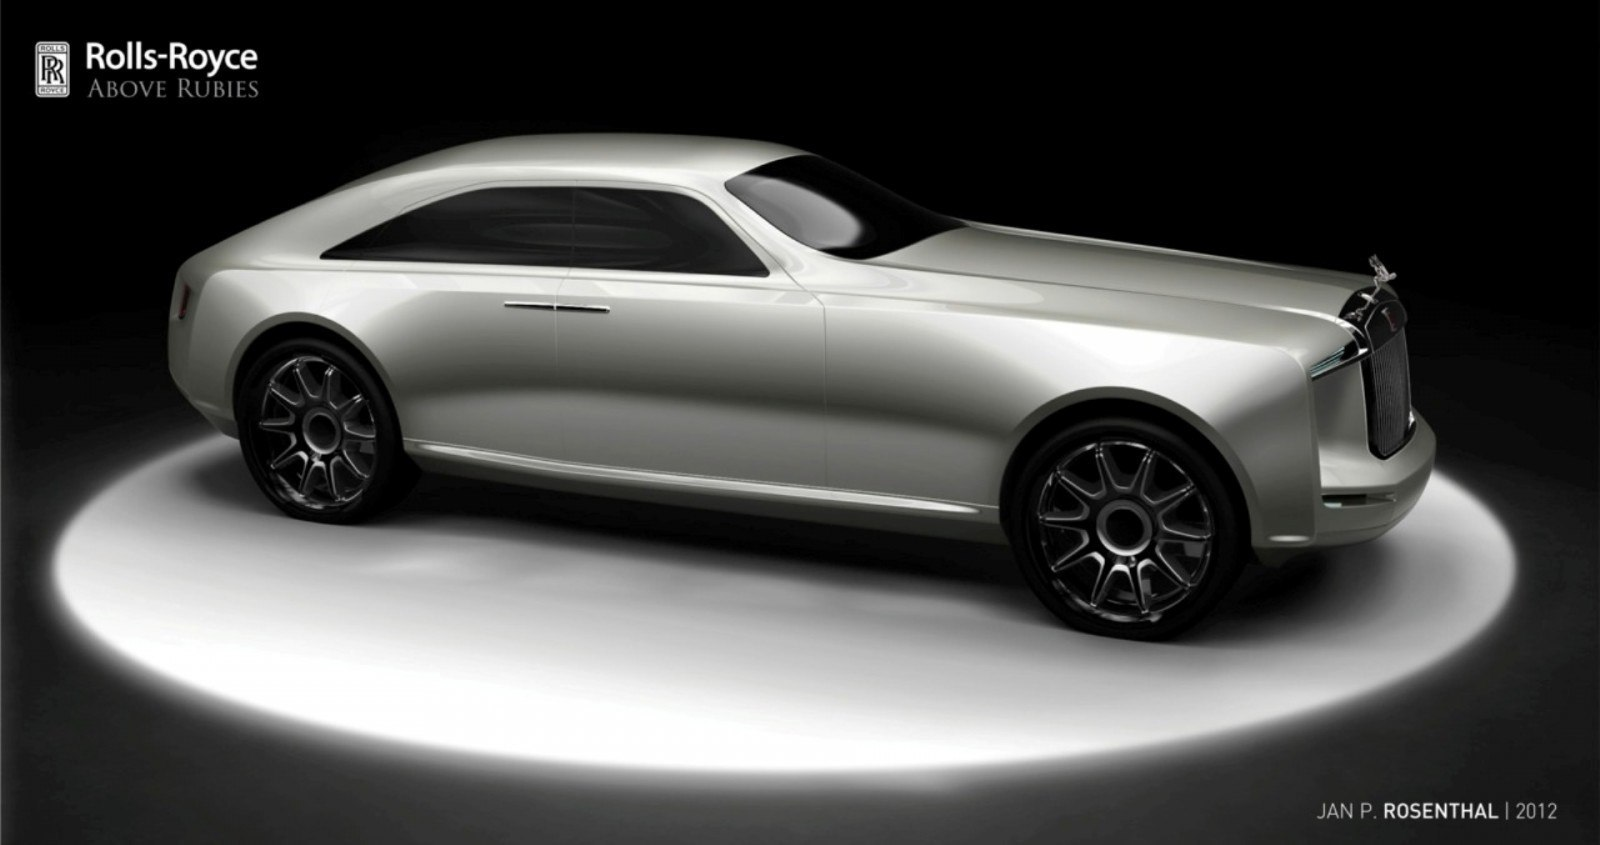 Design Talent Showcase - Jan Rosenthal's 2023 Rolls-Royce Concept Wins Official RCA Contest 7